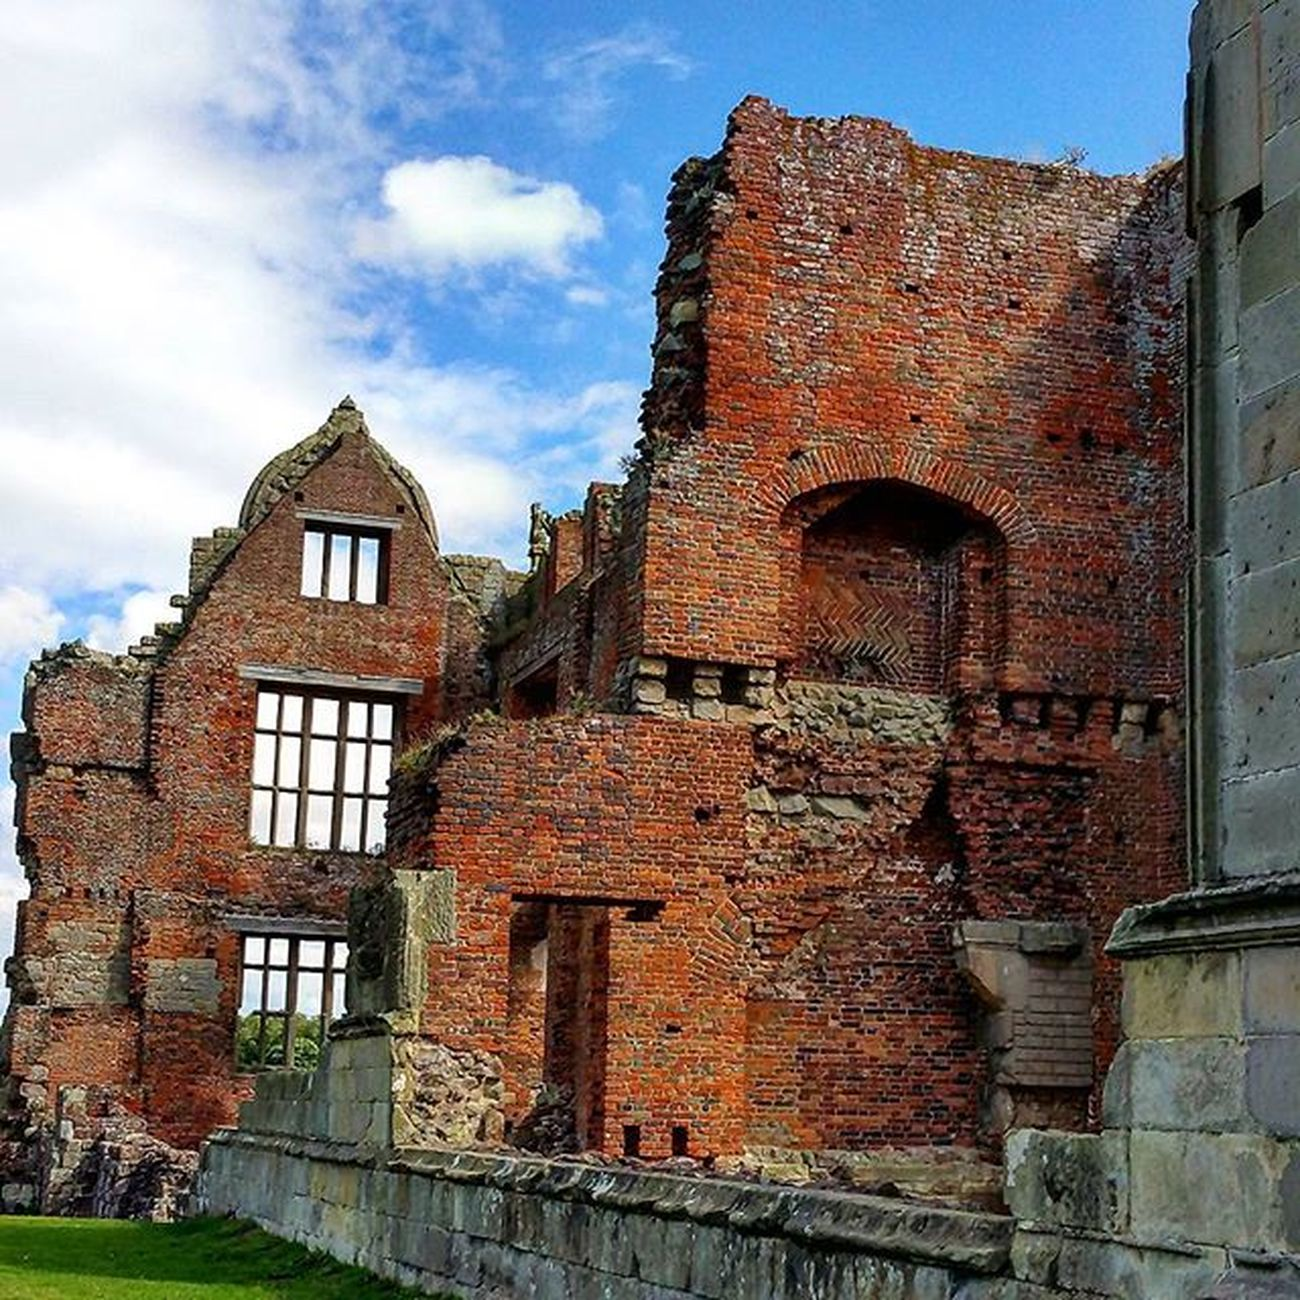 Moreton corbet ruins. Moretoncorbet Moretón Ruins Derelict Abandoned Spooky Elizabethan Mansion Castle Old Haunted Shropshire Ghost Abandonedhouse Graves Church Gargoil